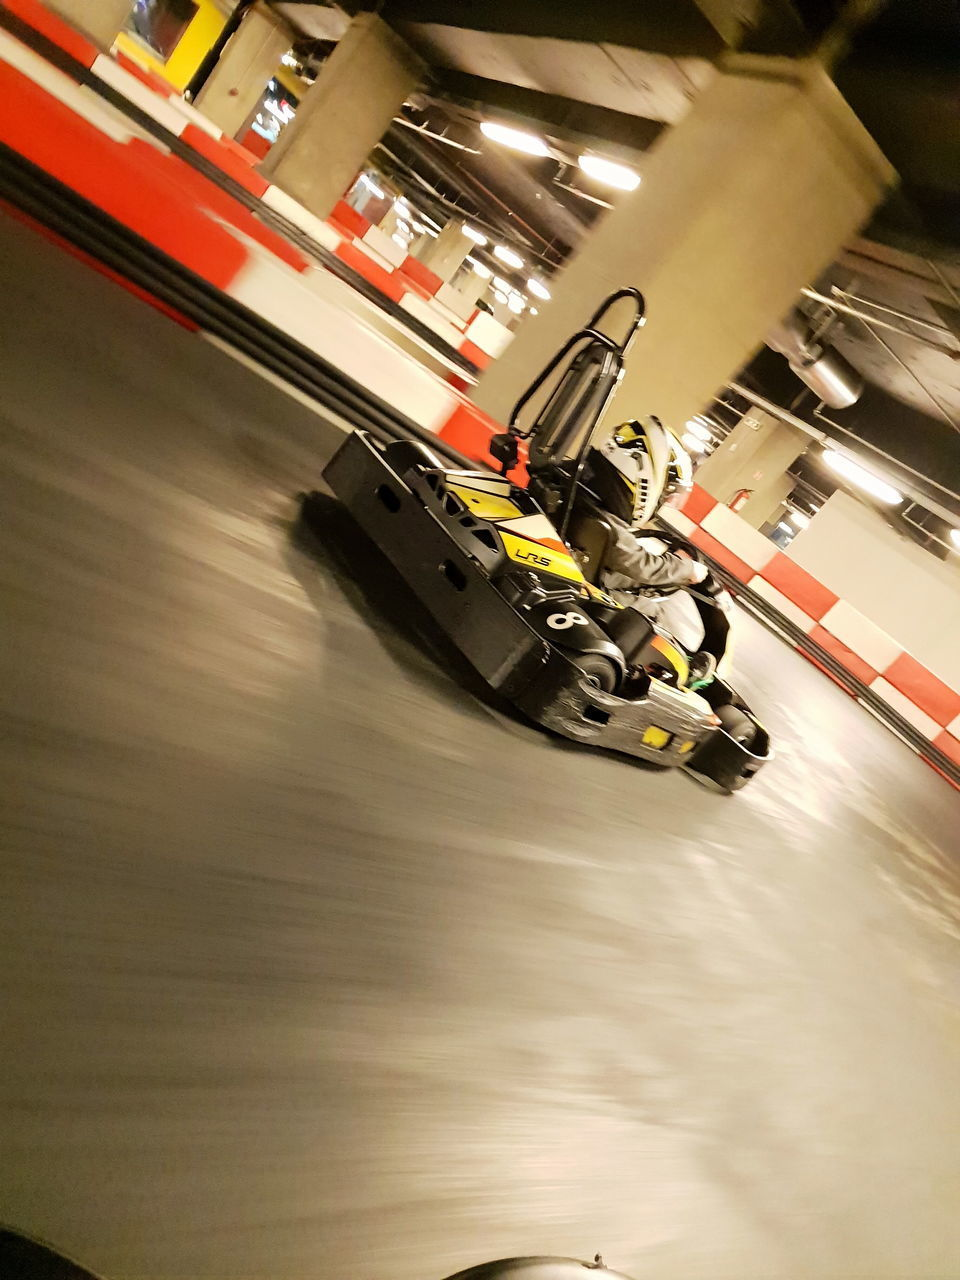 motion, mode of transportation, indoors, transportation, speed, blurred motion, high angle view, technology, flooring, land vehicle, on the move, selective focus, machinery, sport, occupation, equipment, car, illuminated, no people, toy, production line